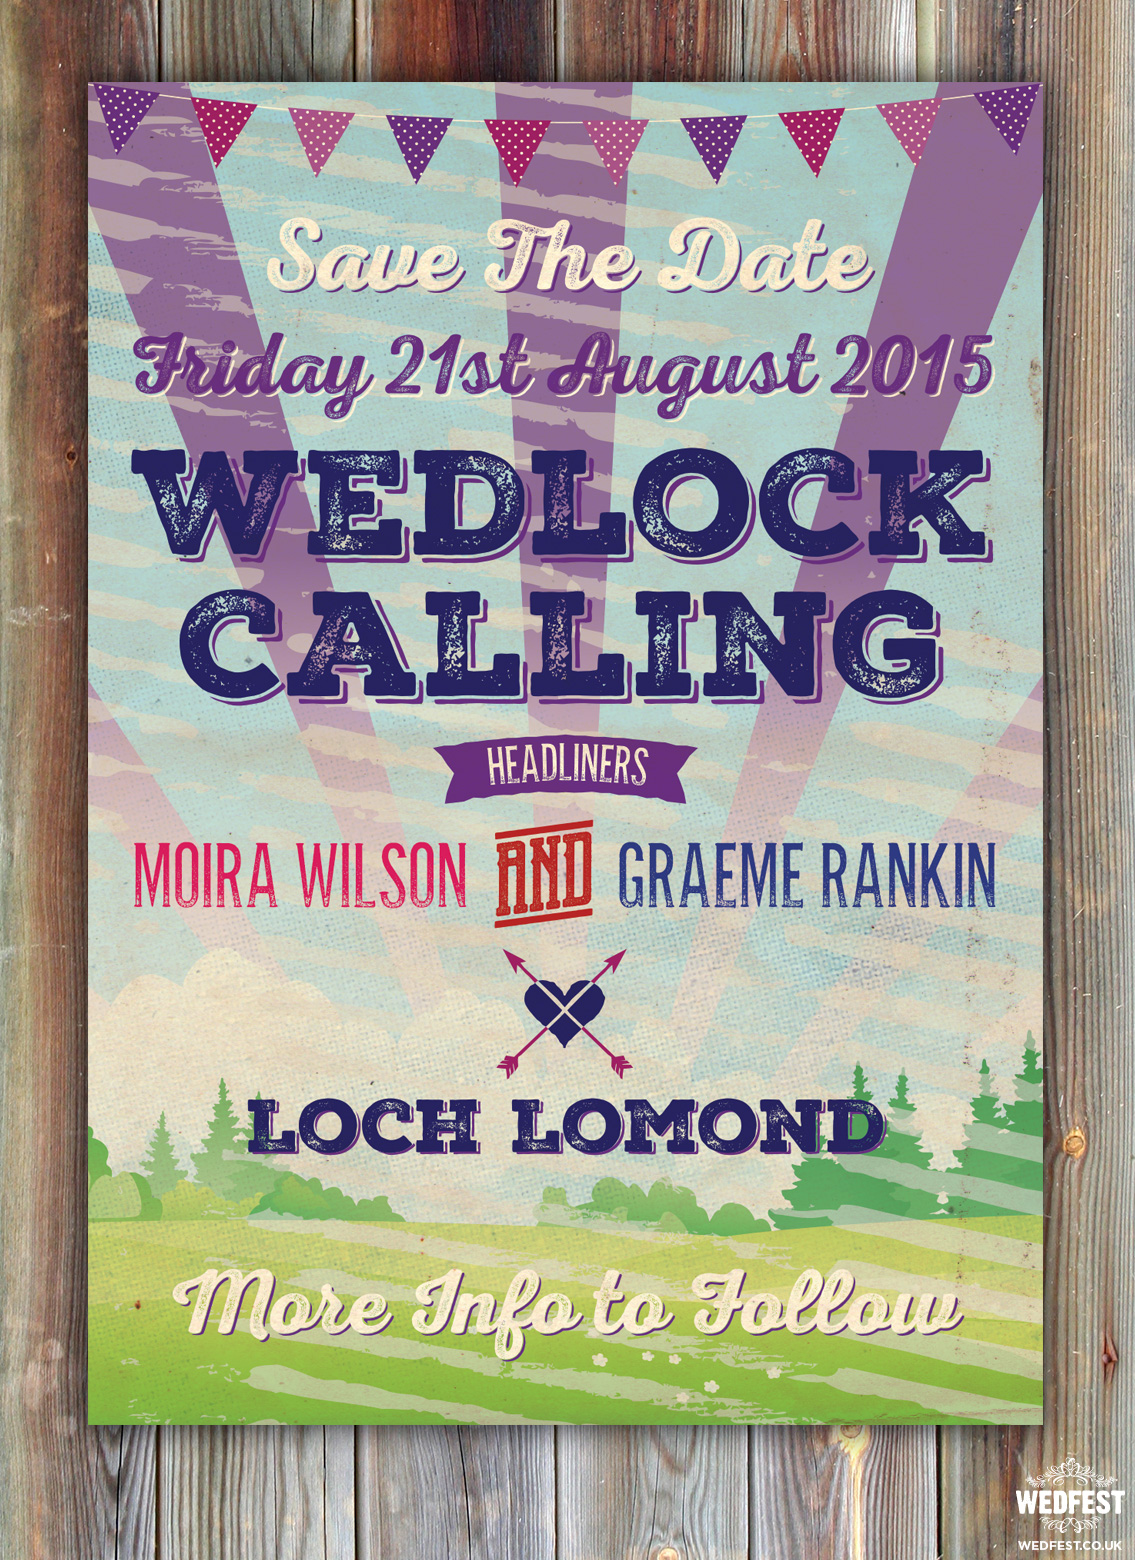 Loch Lomond Scotland Wedding save the date